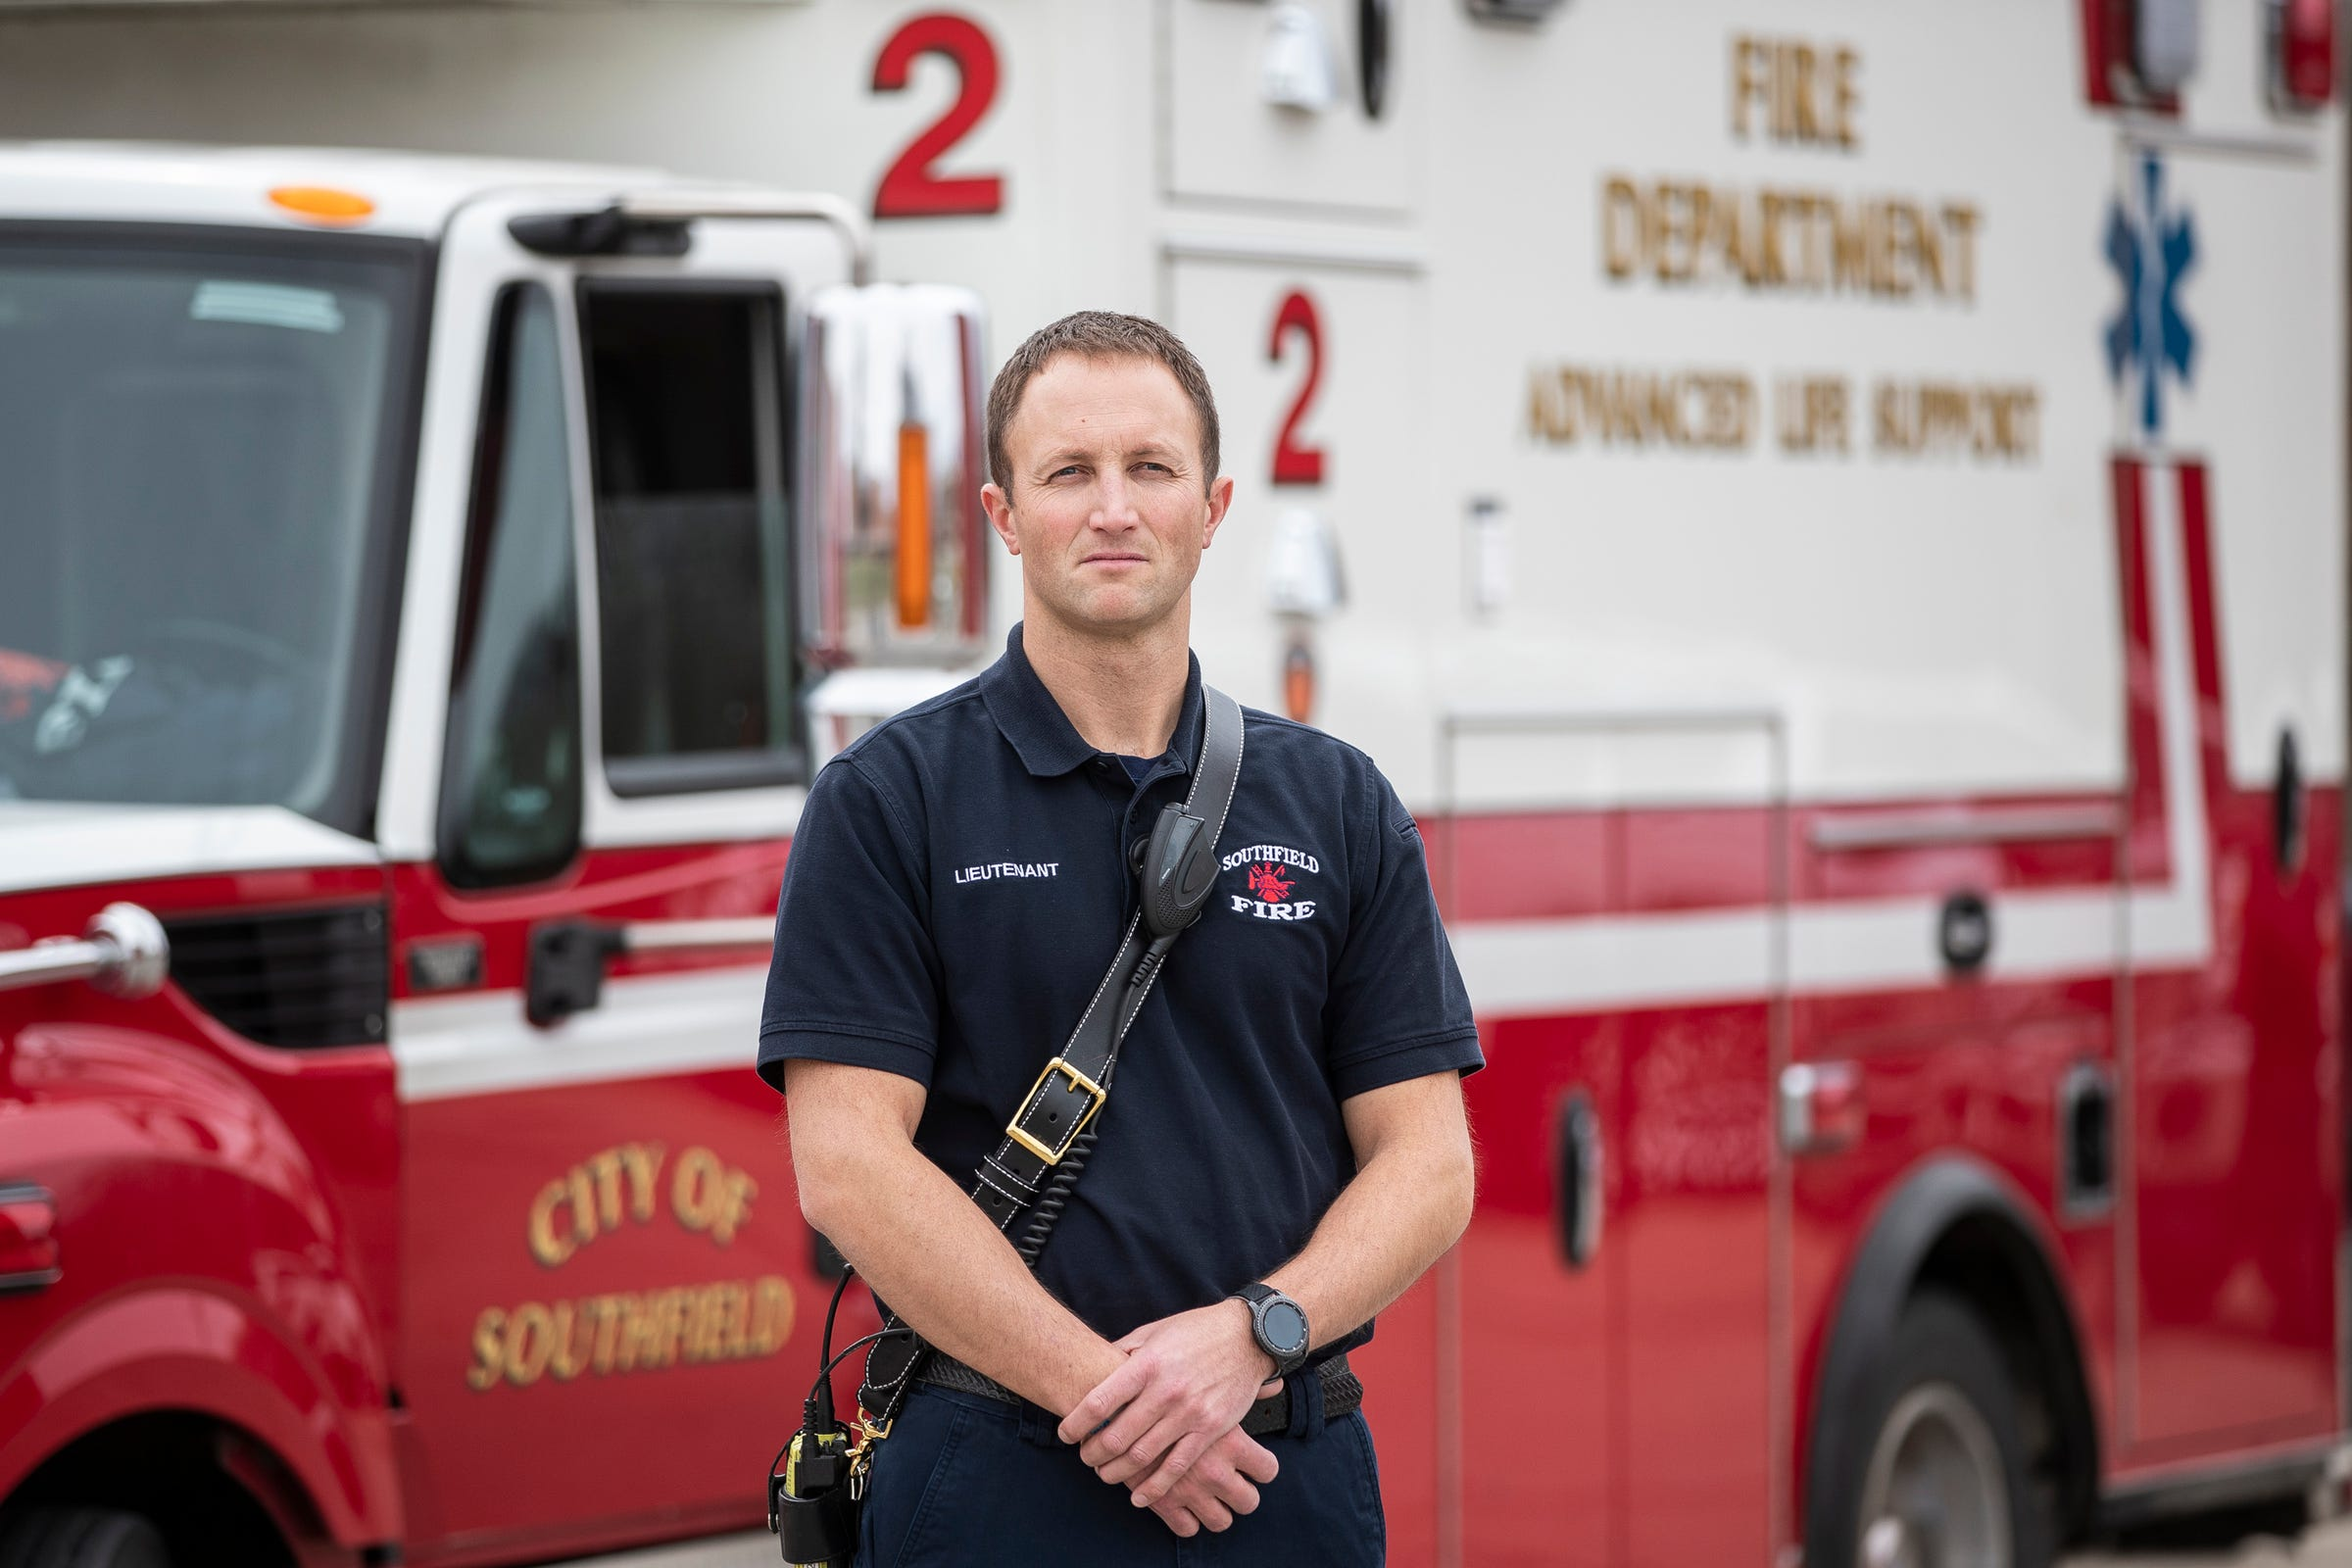 Lieutenant Erik Chesnut poses for a photo in front of his Life 2 vehicle at the Southfield Fire Department headquarter in Southfield, Thursday, March 26, 2020.